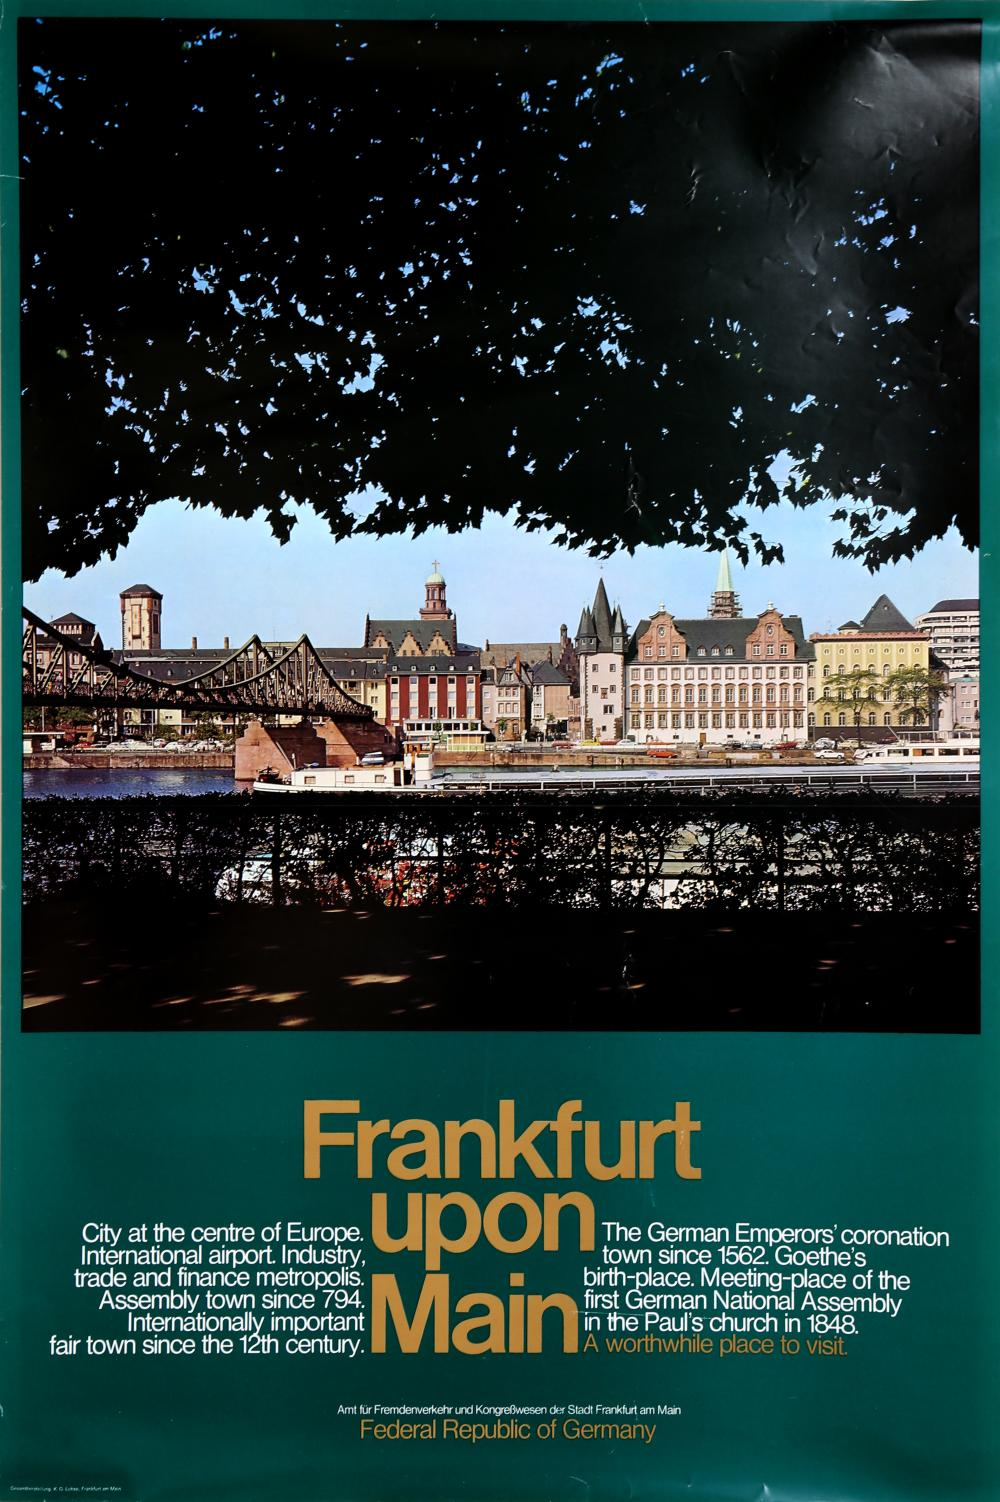 Travel Poster, Frankfurt Upon Main - Federal Republic of Germany (Green), Poster